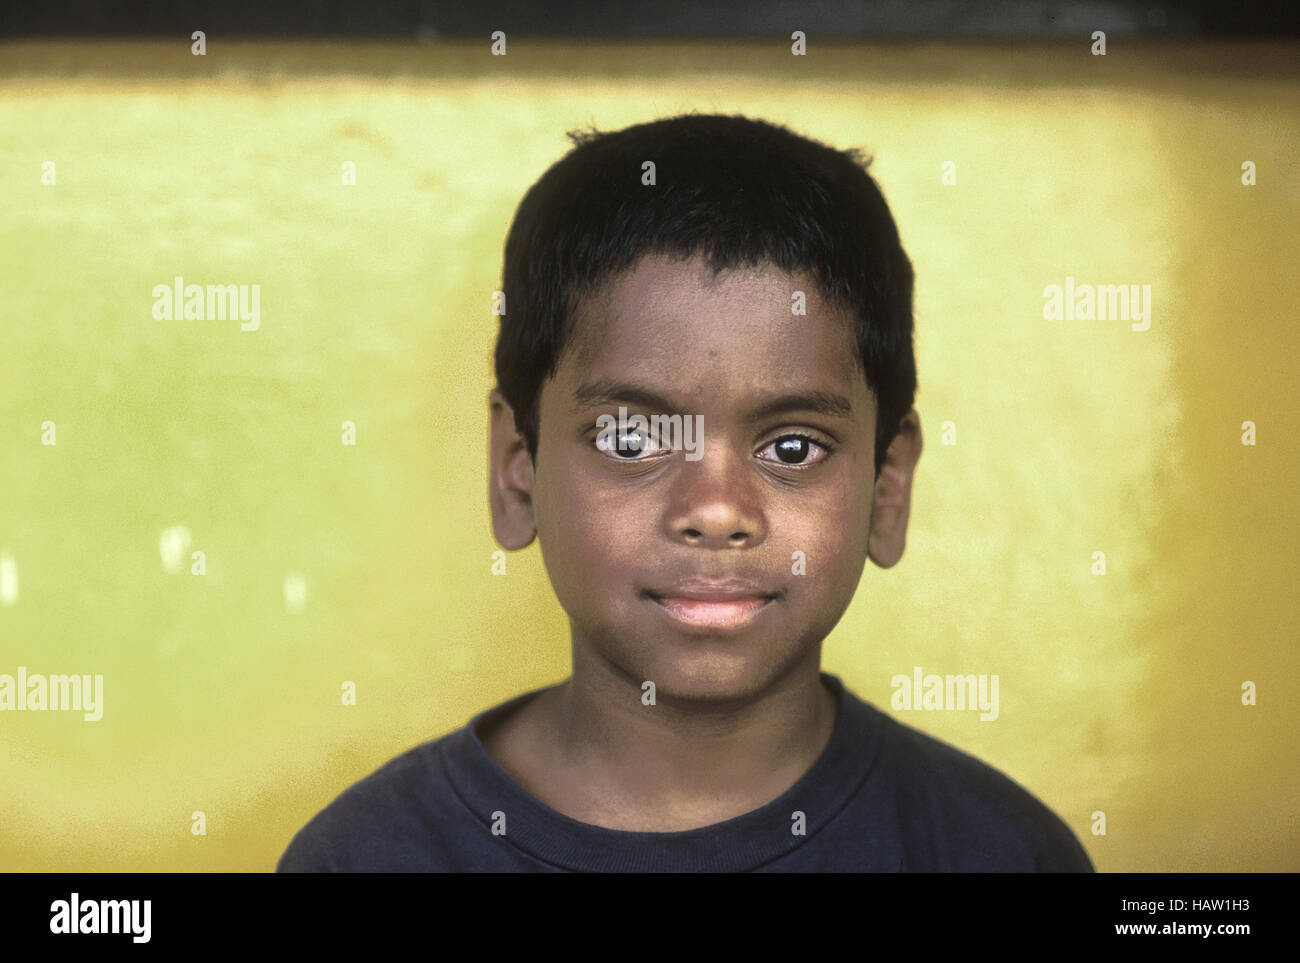 Portrait of young boy with large bright eyes. Asian Indian heritage - Stock Image